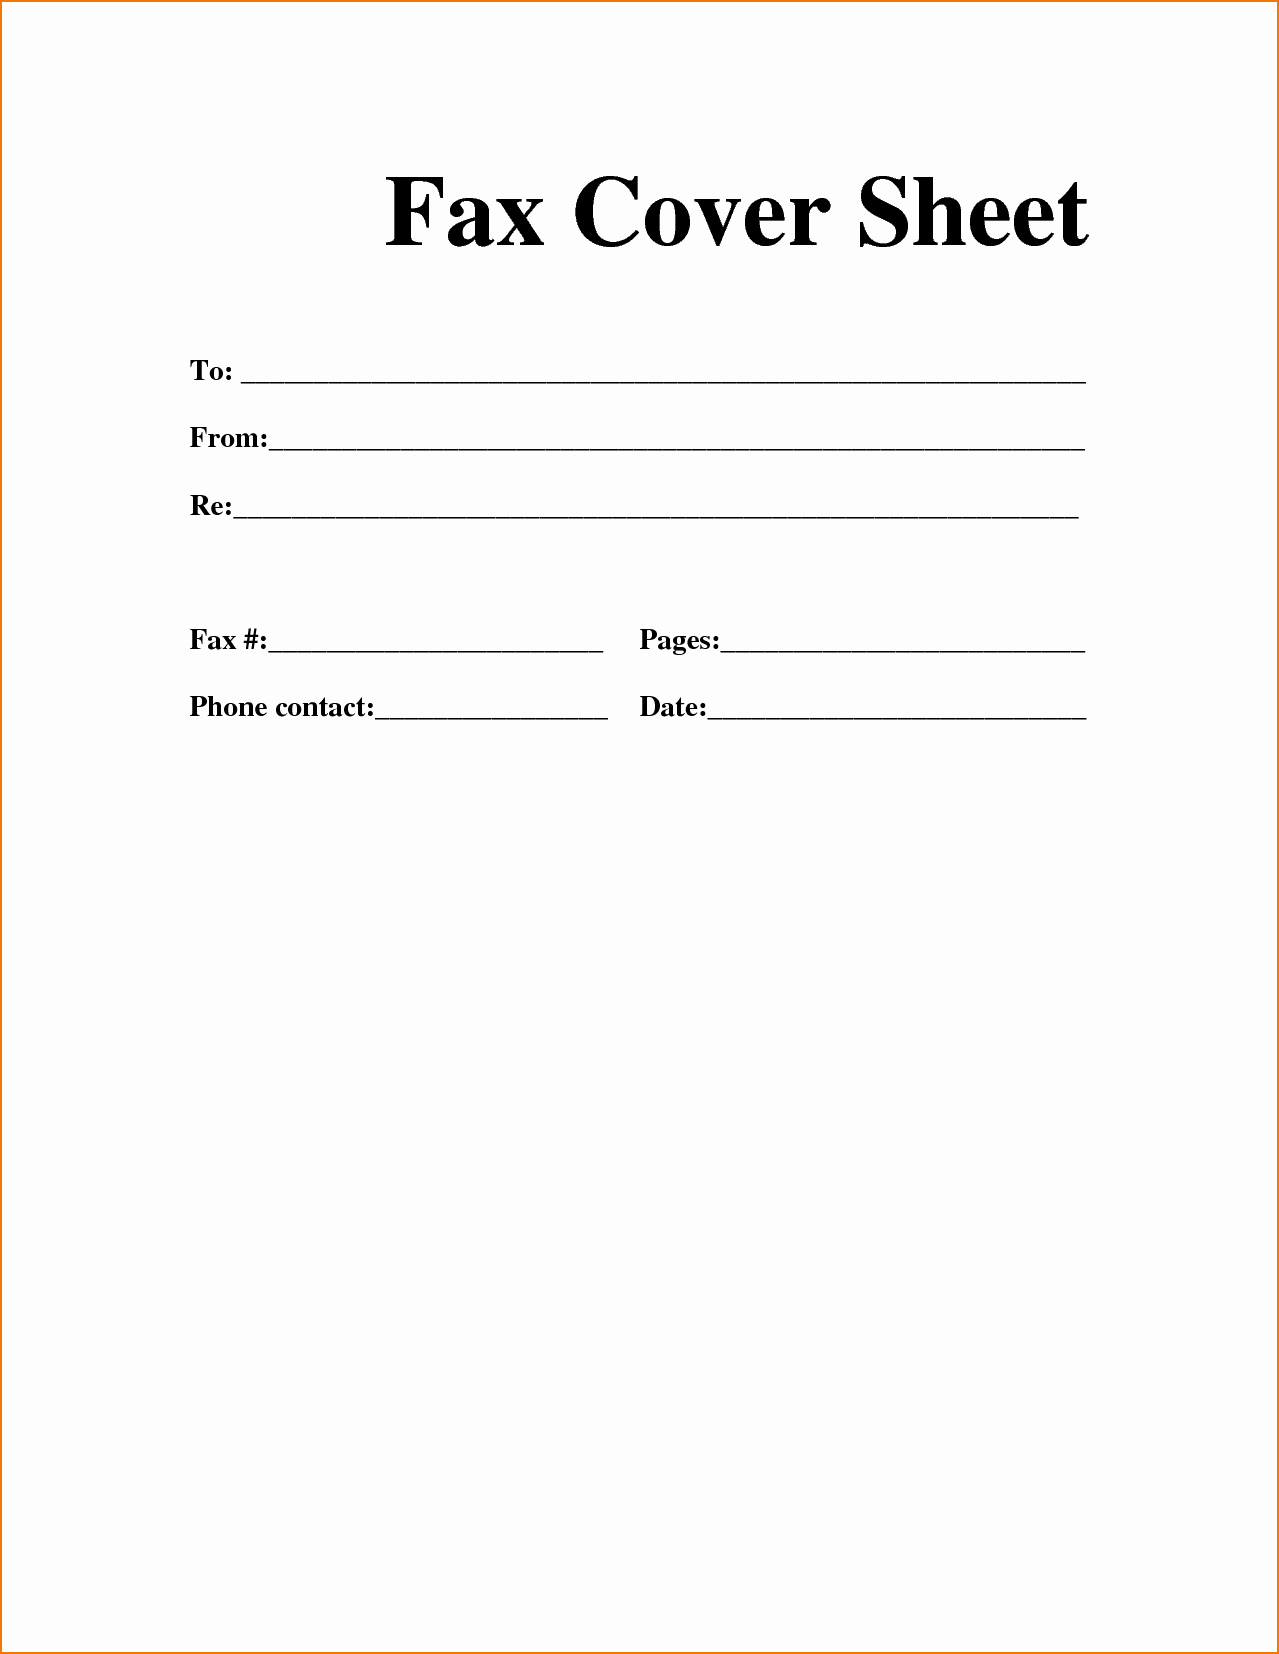 Fax Cover Letter Sample Best Of Sample Personal Fax Cover Sheet Template In 2019